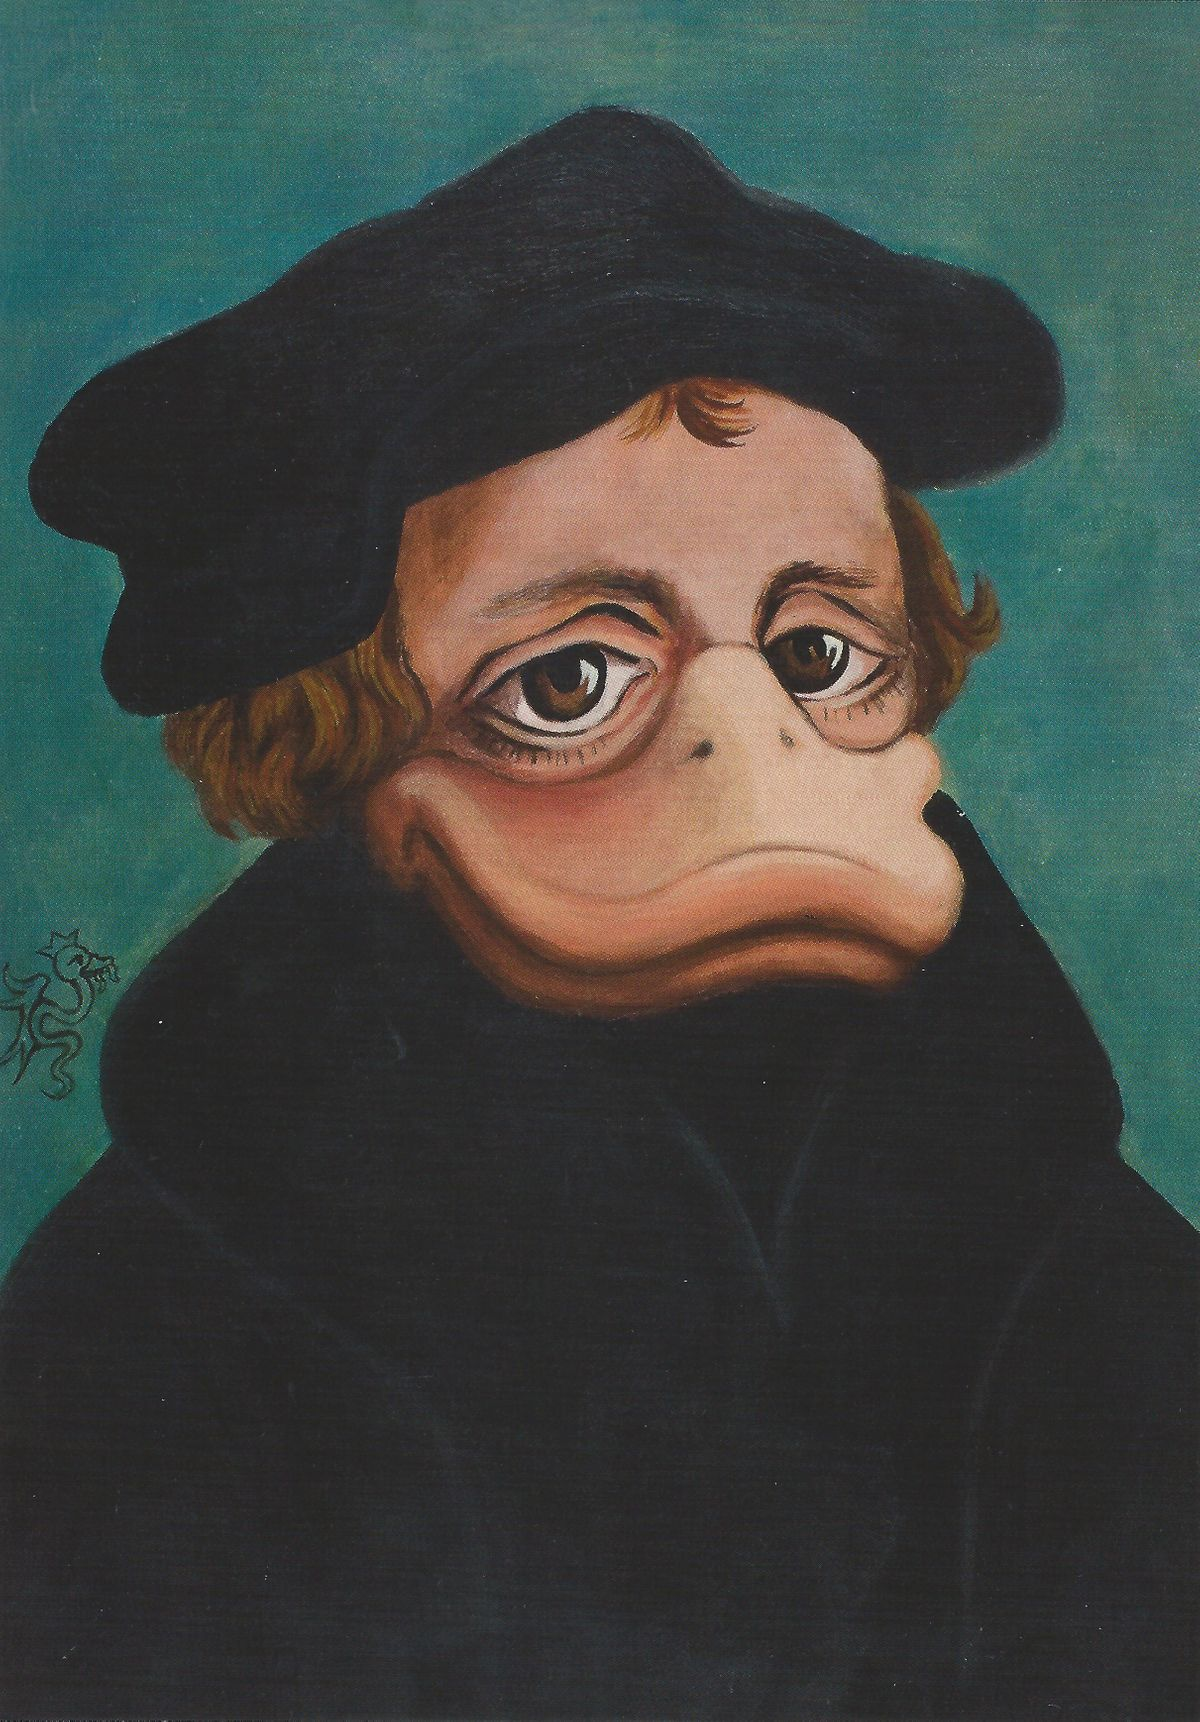 duckomenta interdruck berlin luther nach cranach